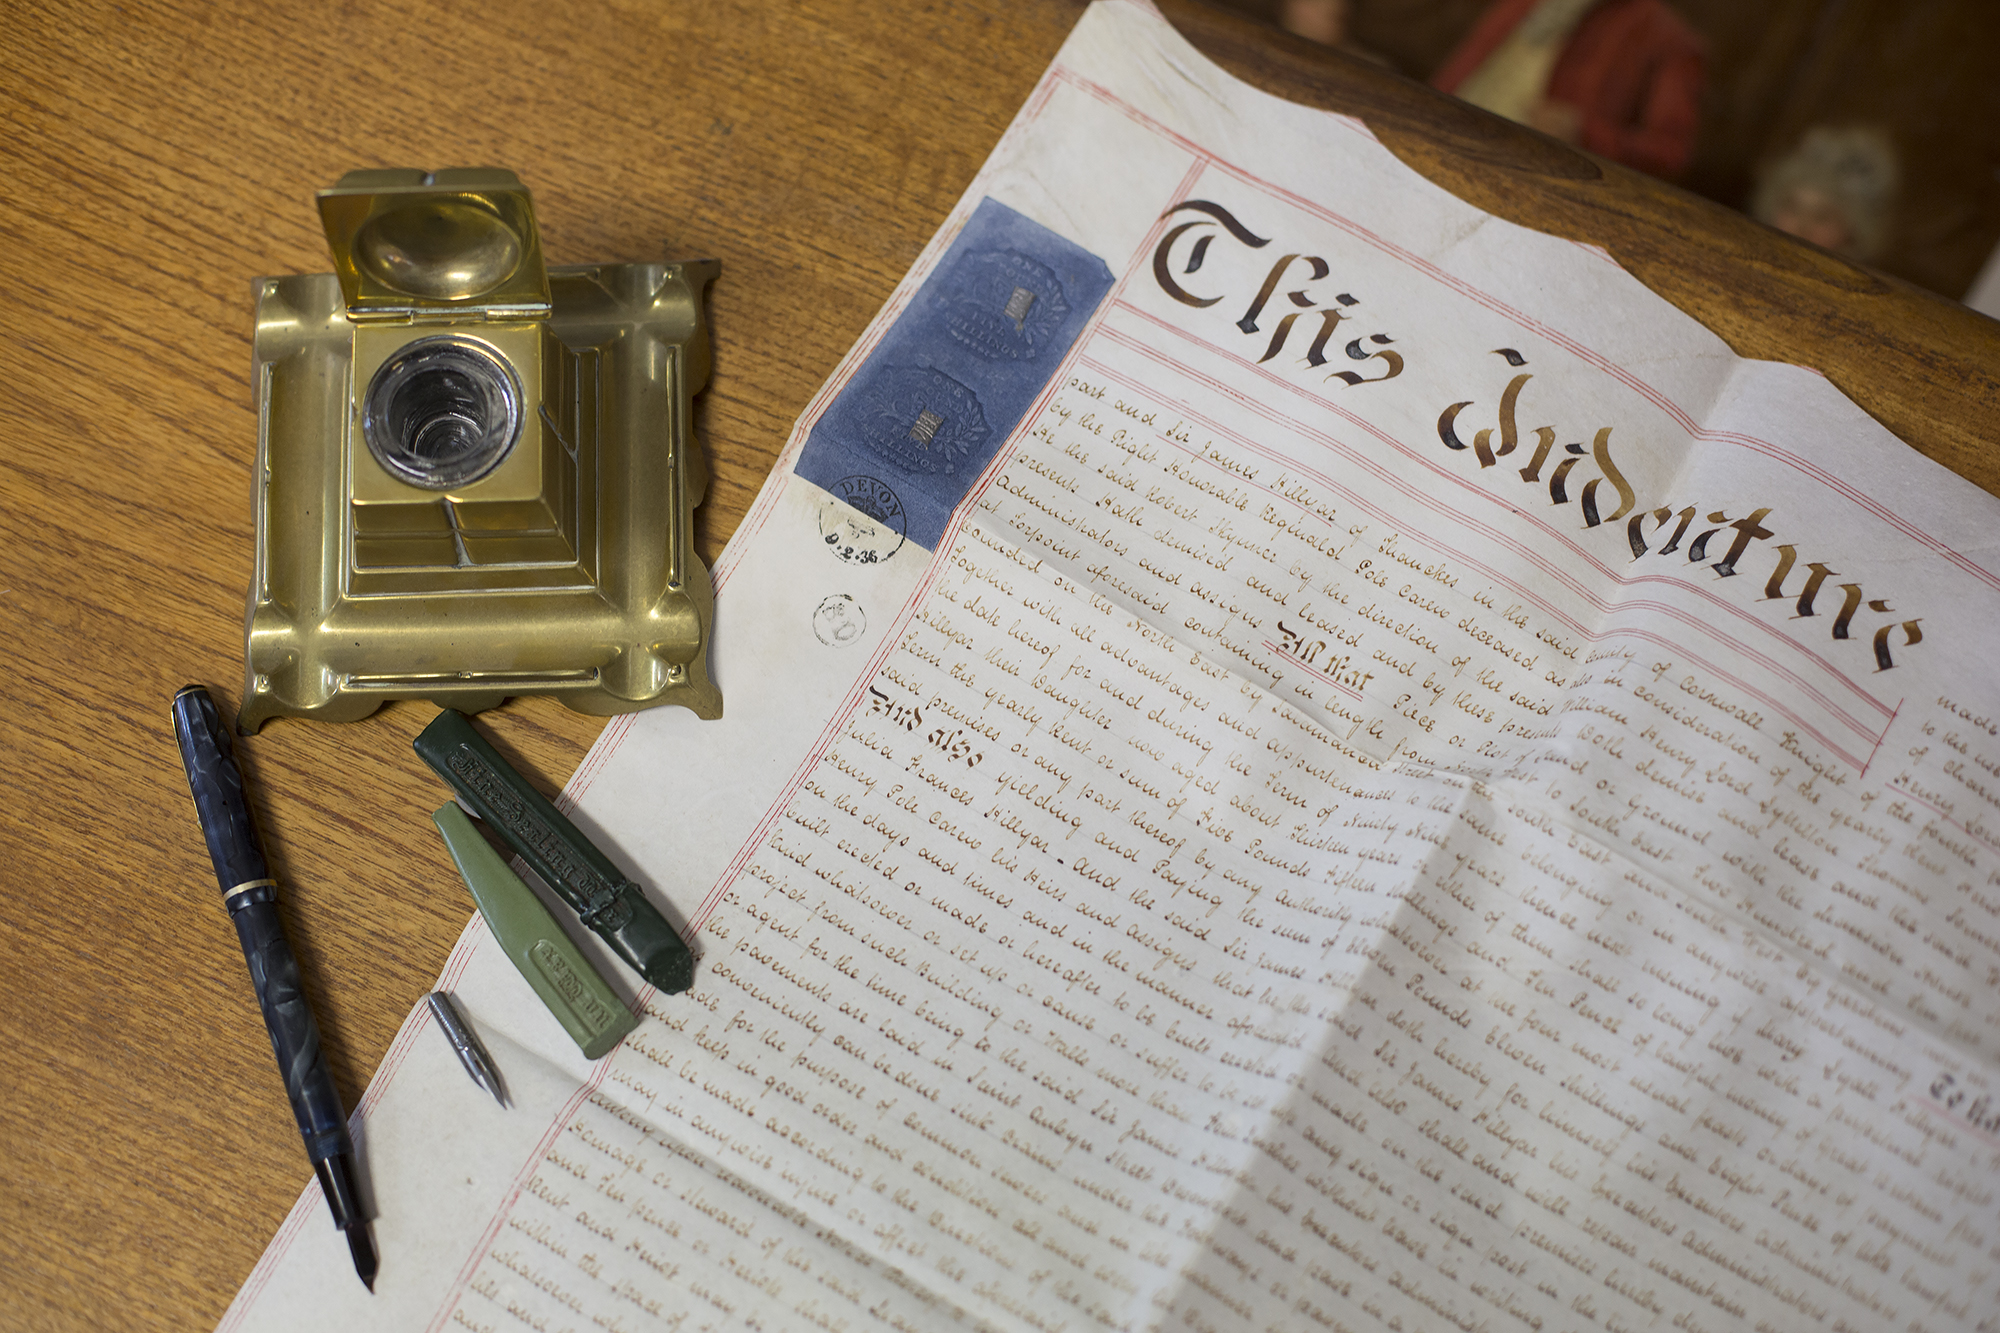 1836 - English land deed, ink well, sealing wax and dip fountain pen.